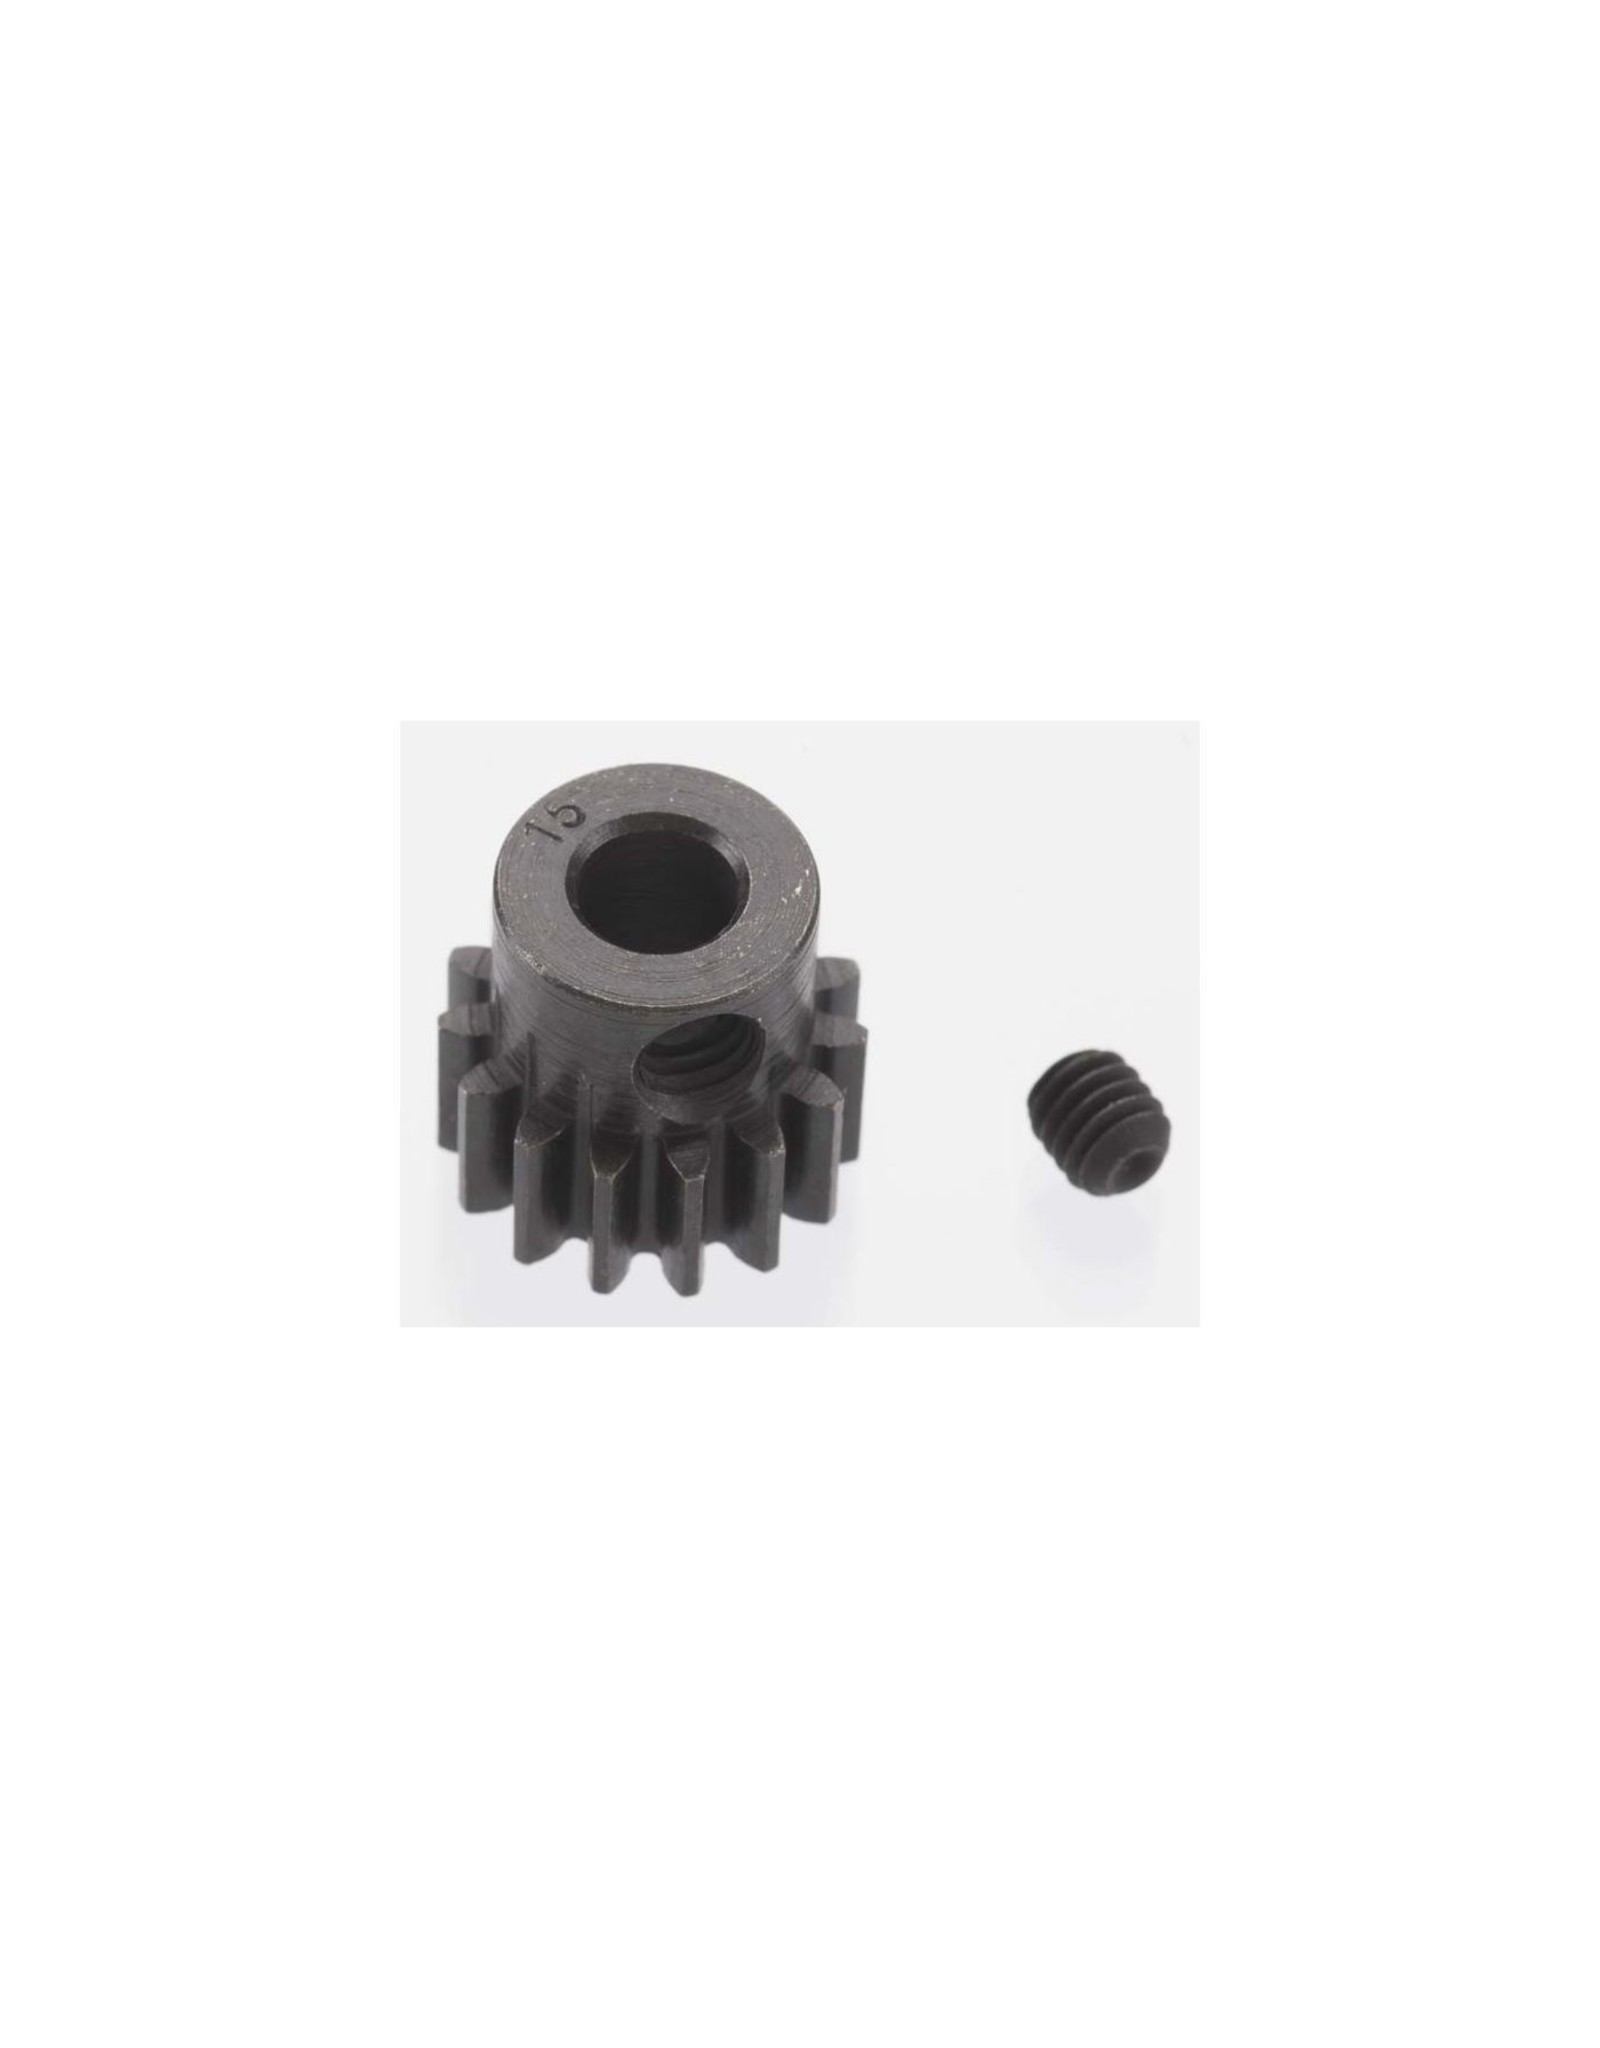 Robinson Racing Products (RRP) Extra Hard 15 Tooth Blackened Steel 32p Pinion 5mm (RRP8615)